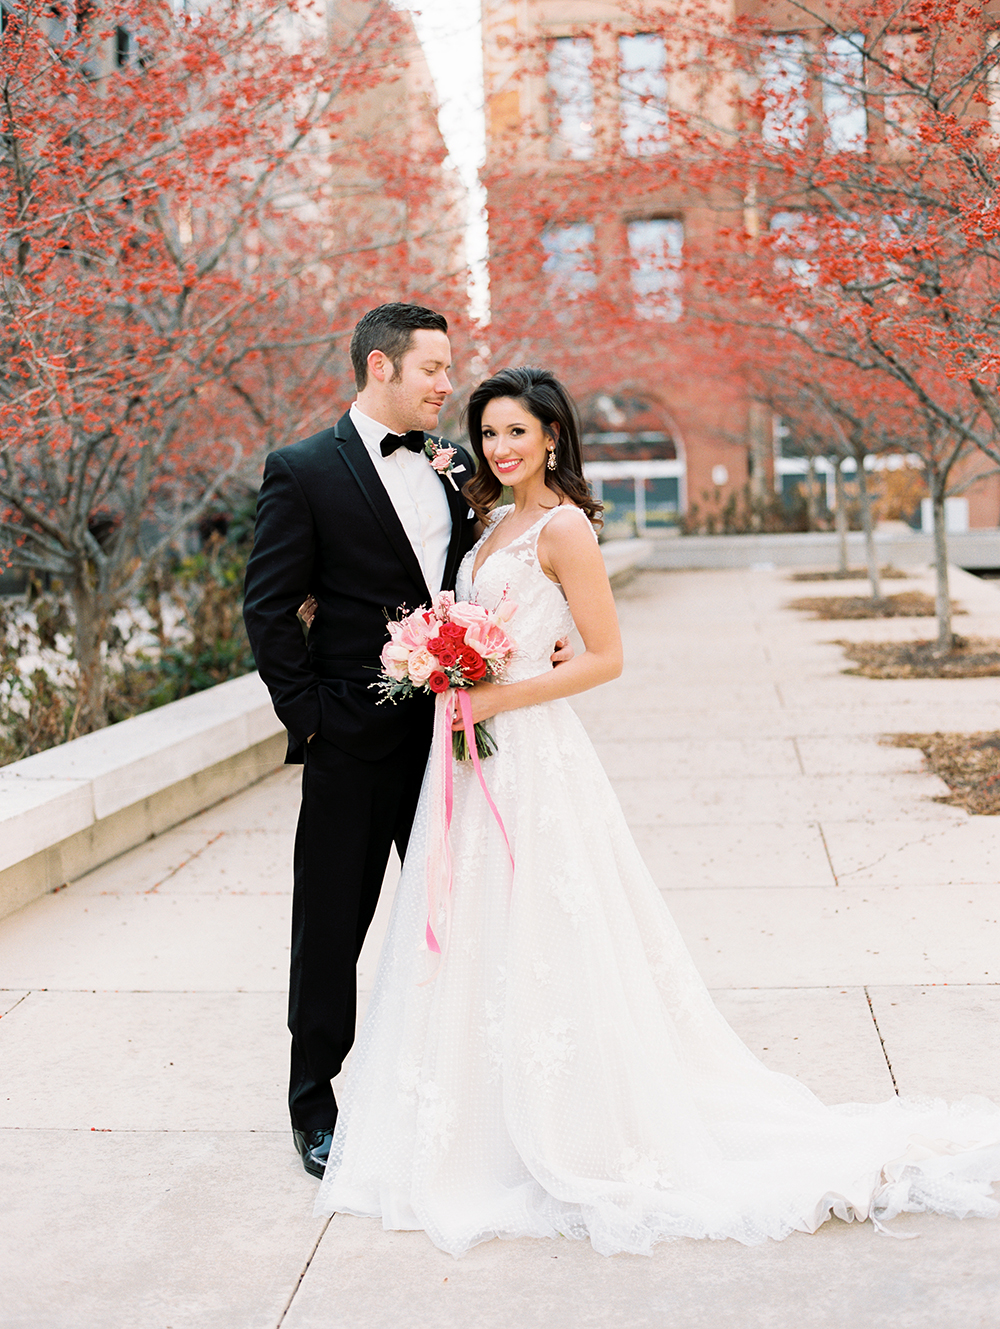 Chic City Valentine's Day Wedding Inspiration - photo by Erin Stubblefield http://ruffledblog.com/chic-city-valentines-day-wedding-inspiration